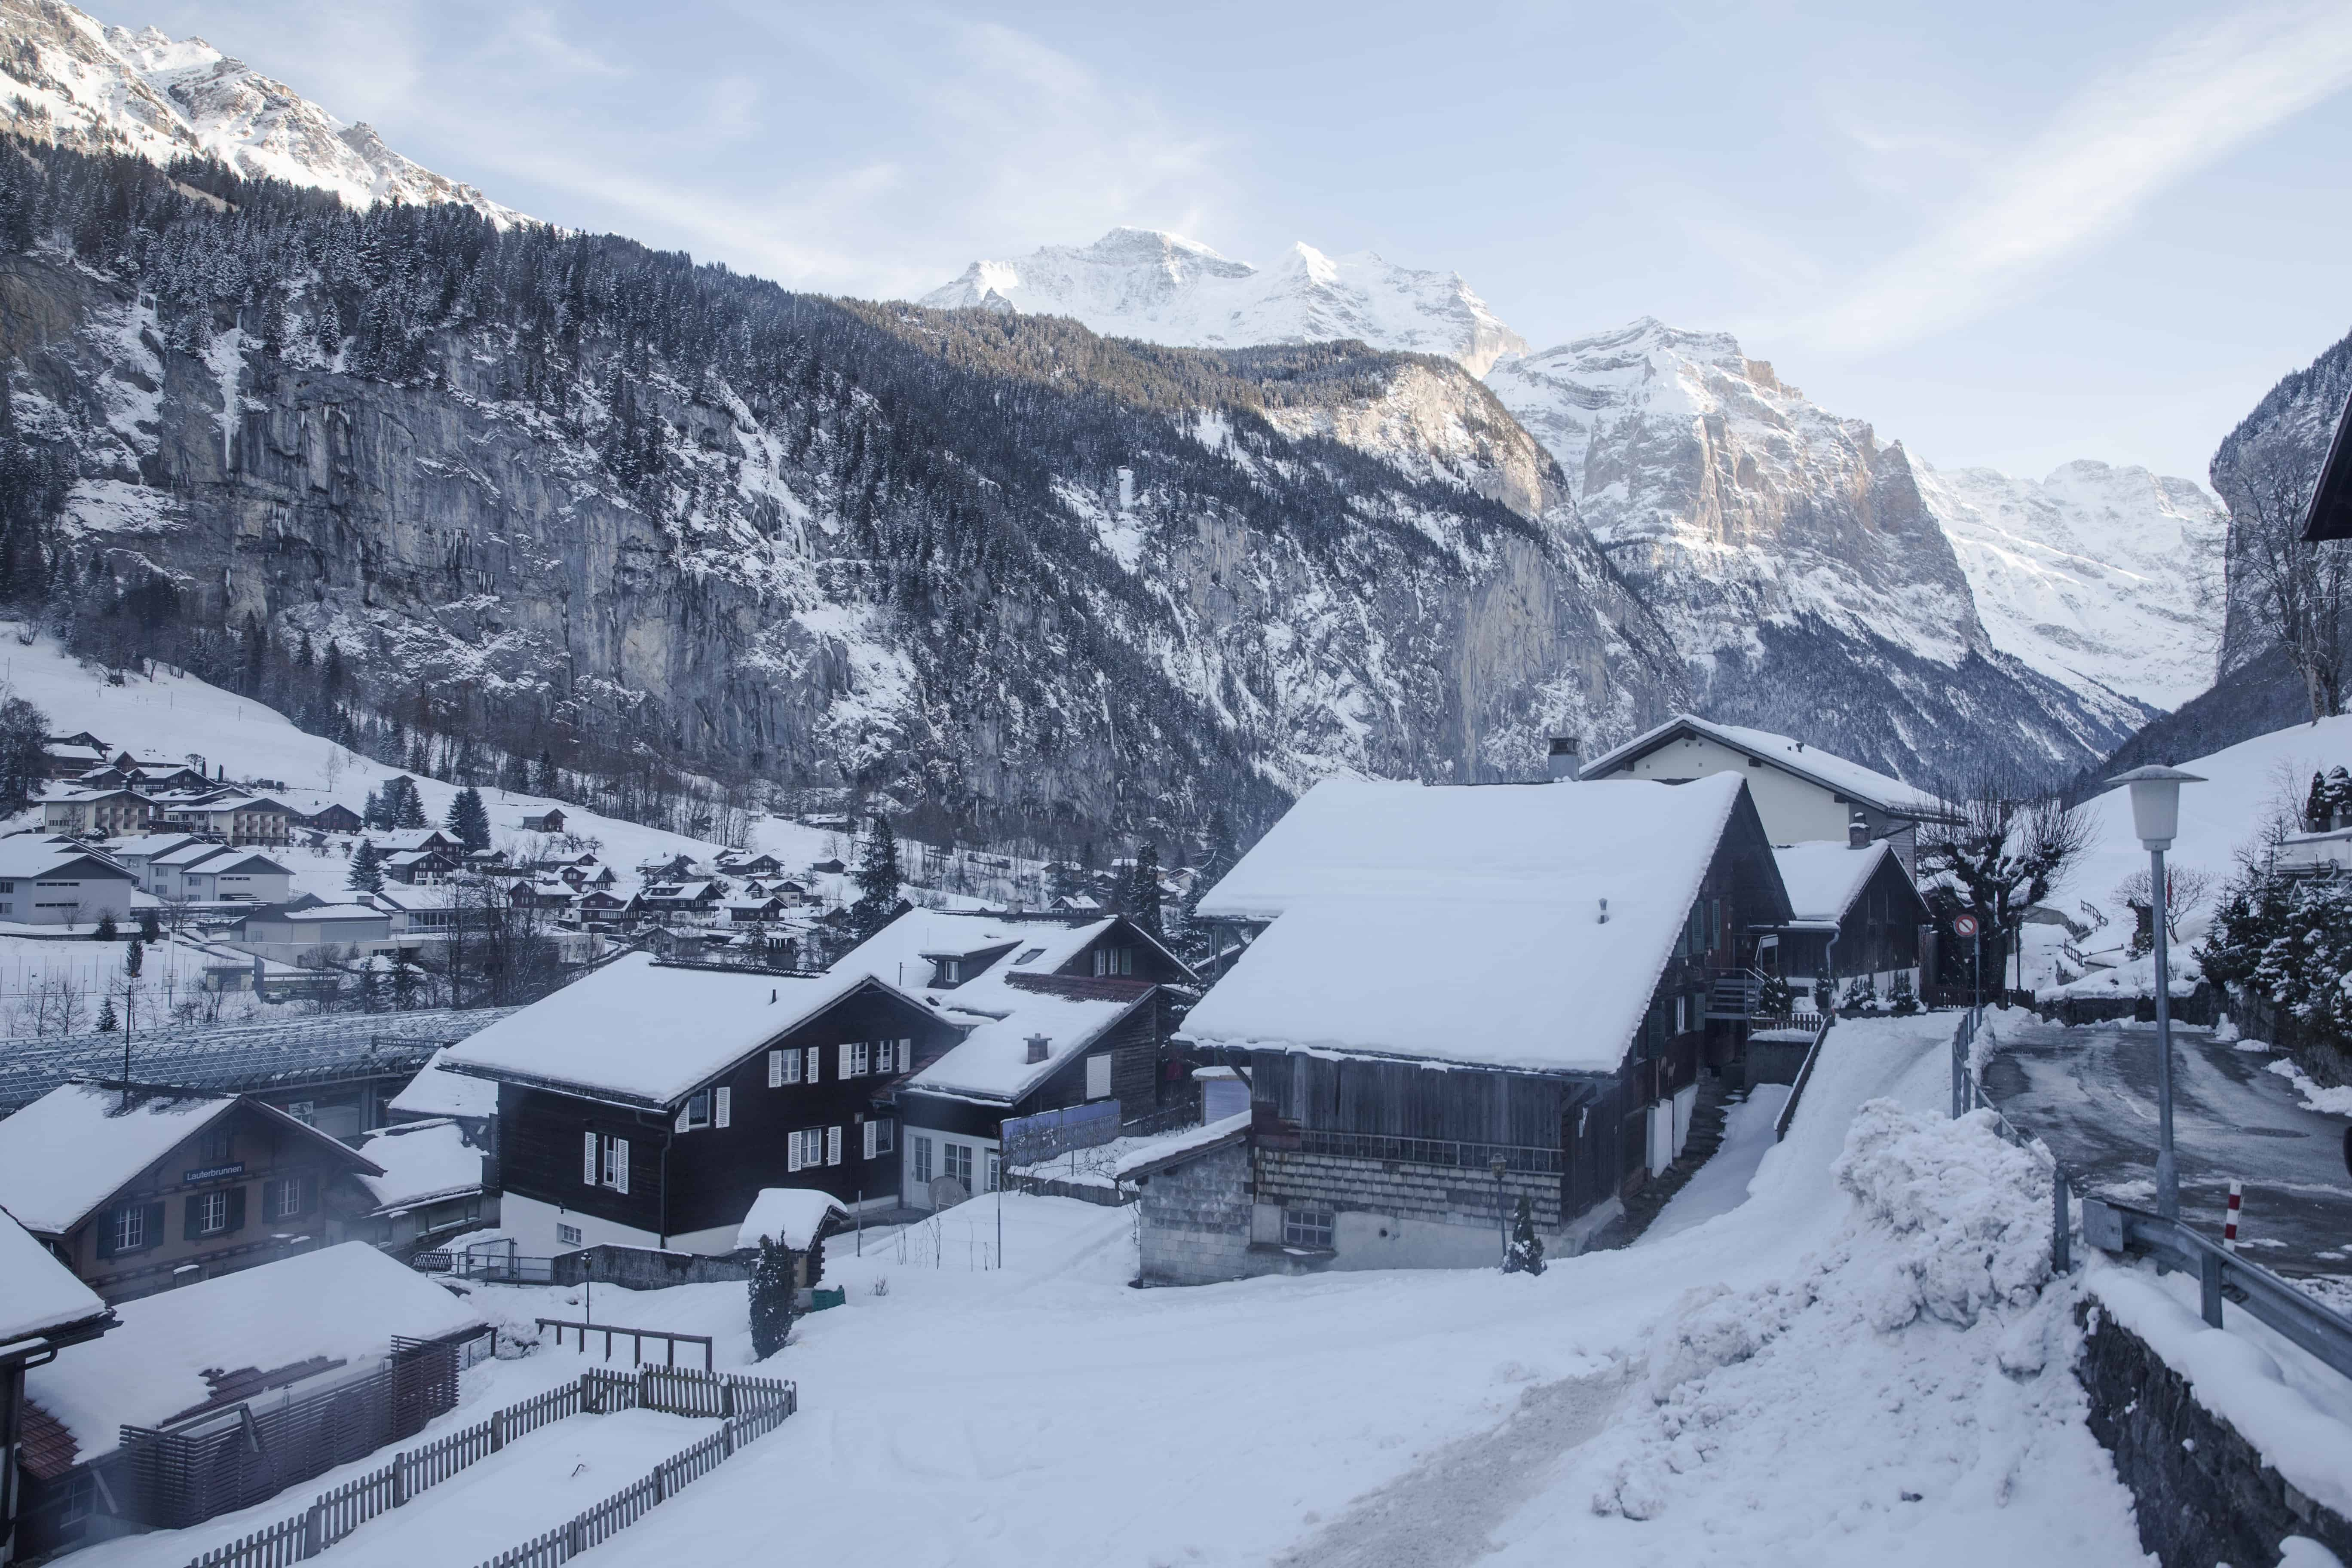 Ski chalets in Mürren, Switzerland, a classic ski town in the Swiss Alps, covered in snow in February